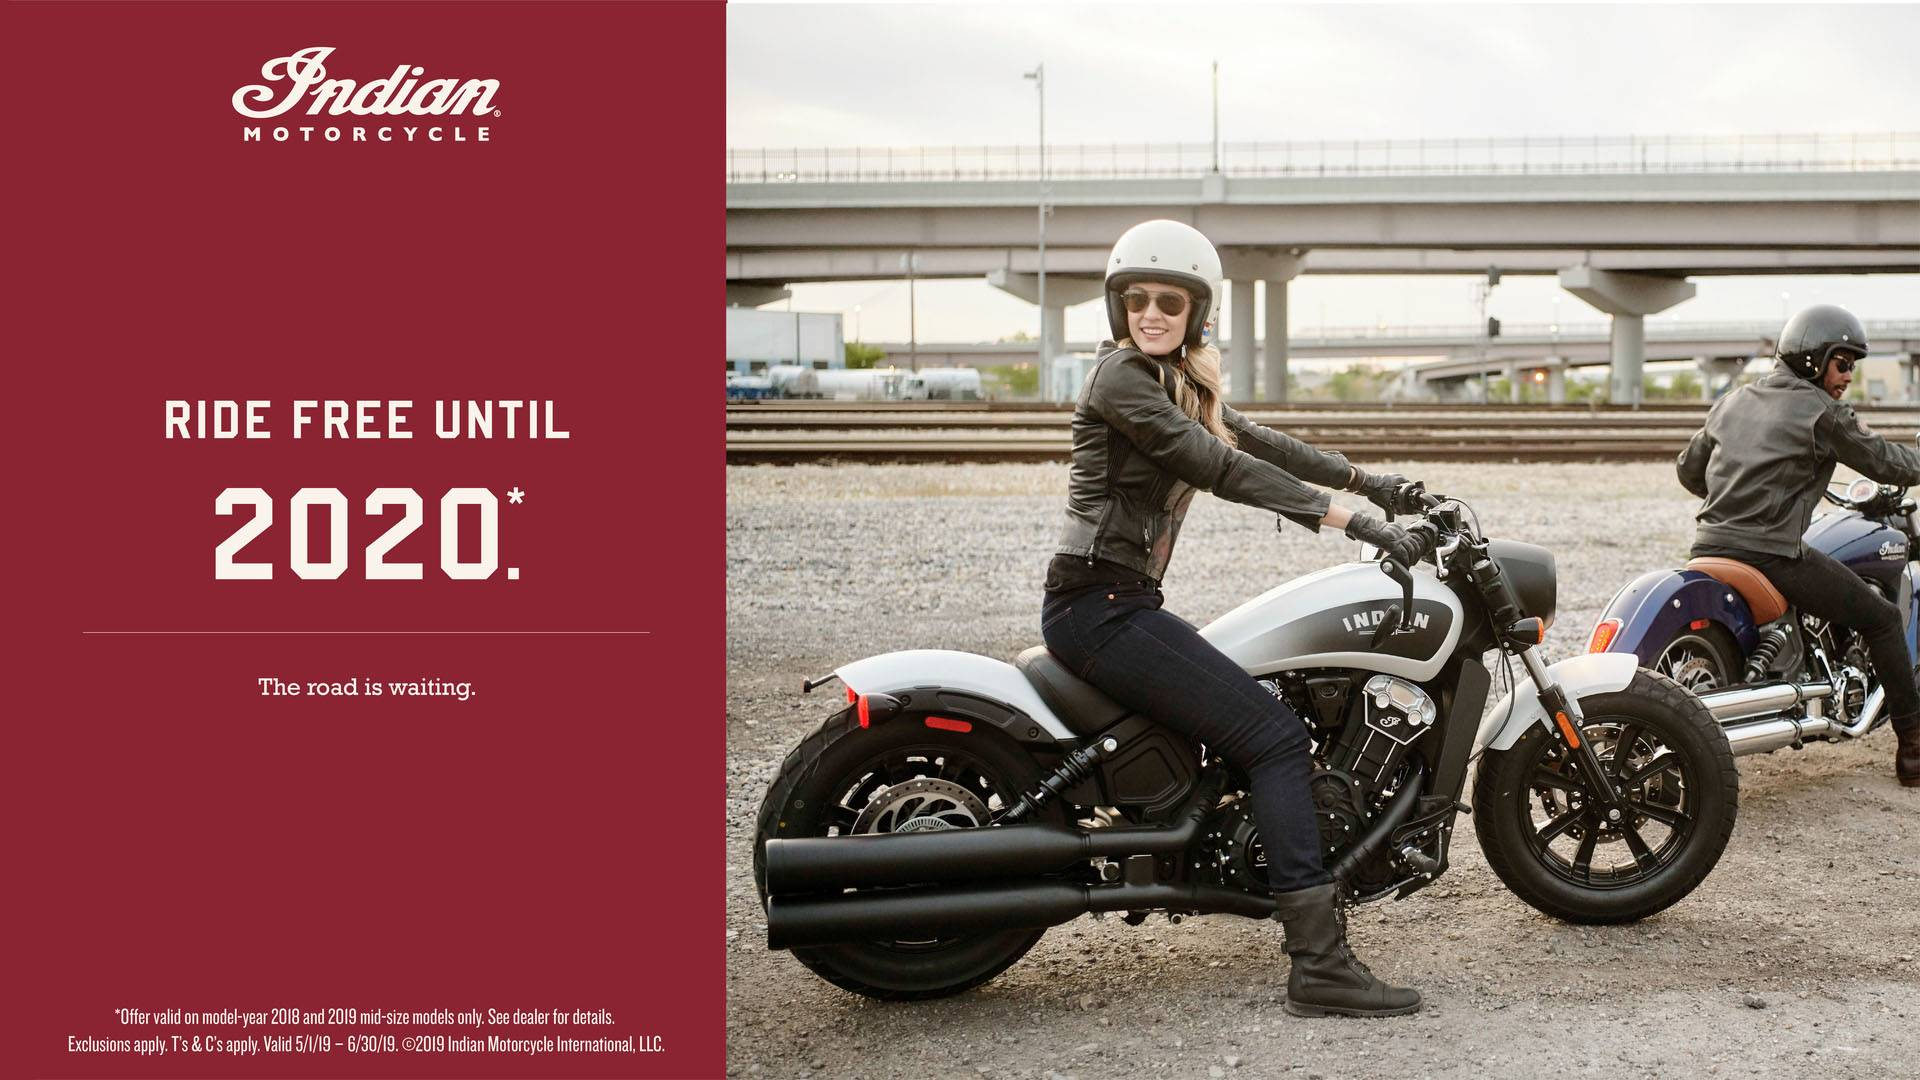 indian motorcycle of auburn is located in auburn, wa | shop our